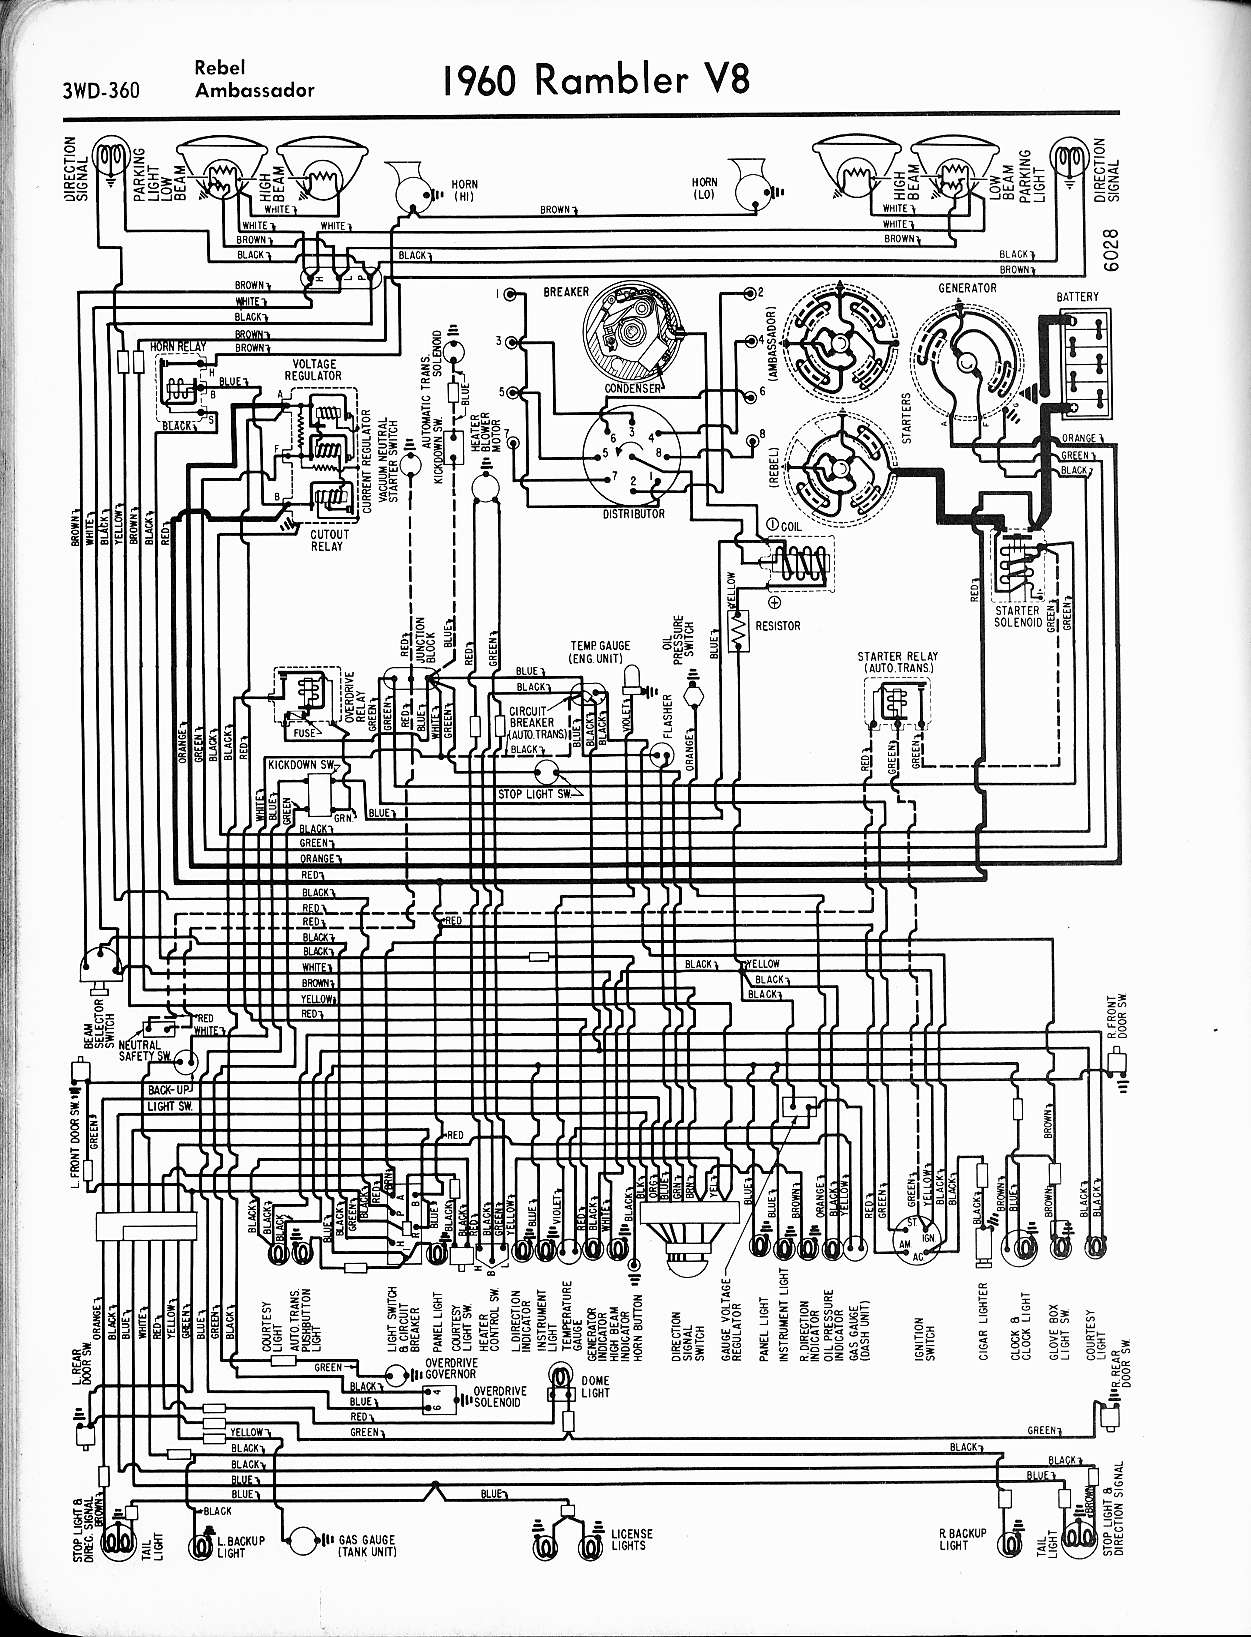 MWire5765 360 rambler wiring diagrams the old car manual project amc rebel wiring diagram at gsmportal.co